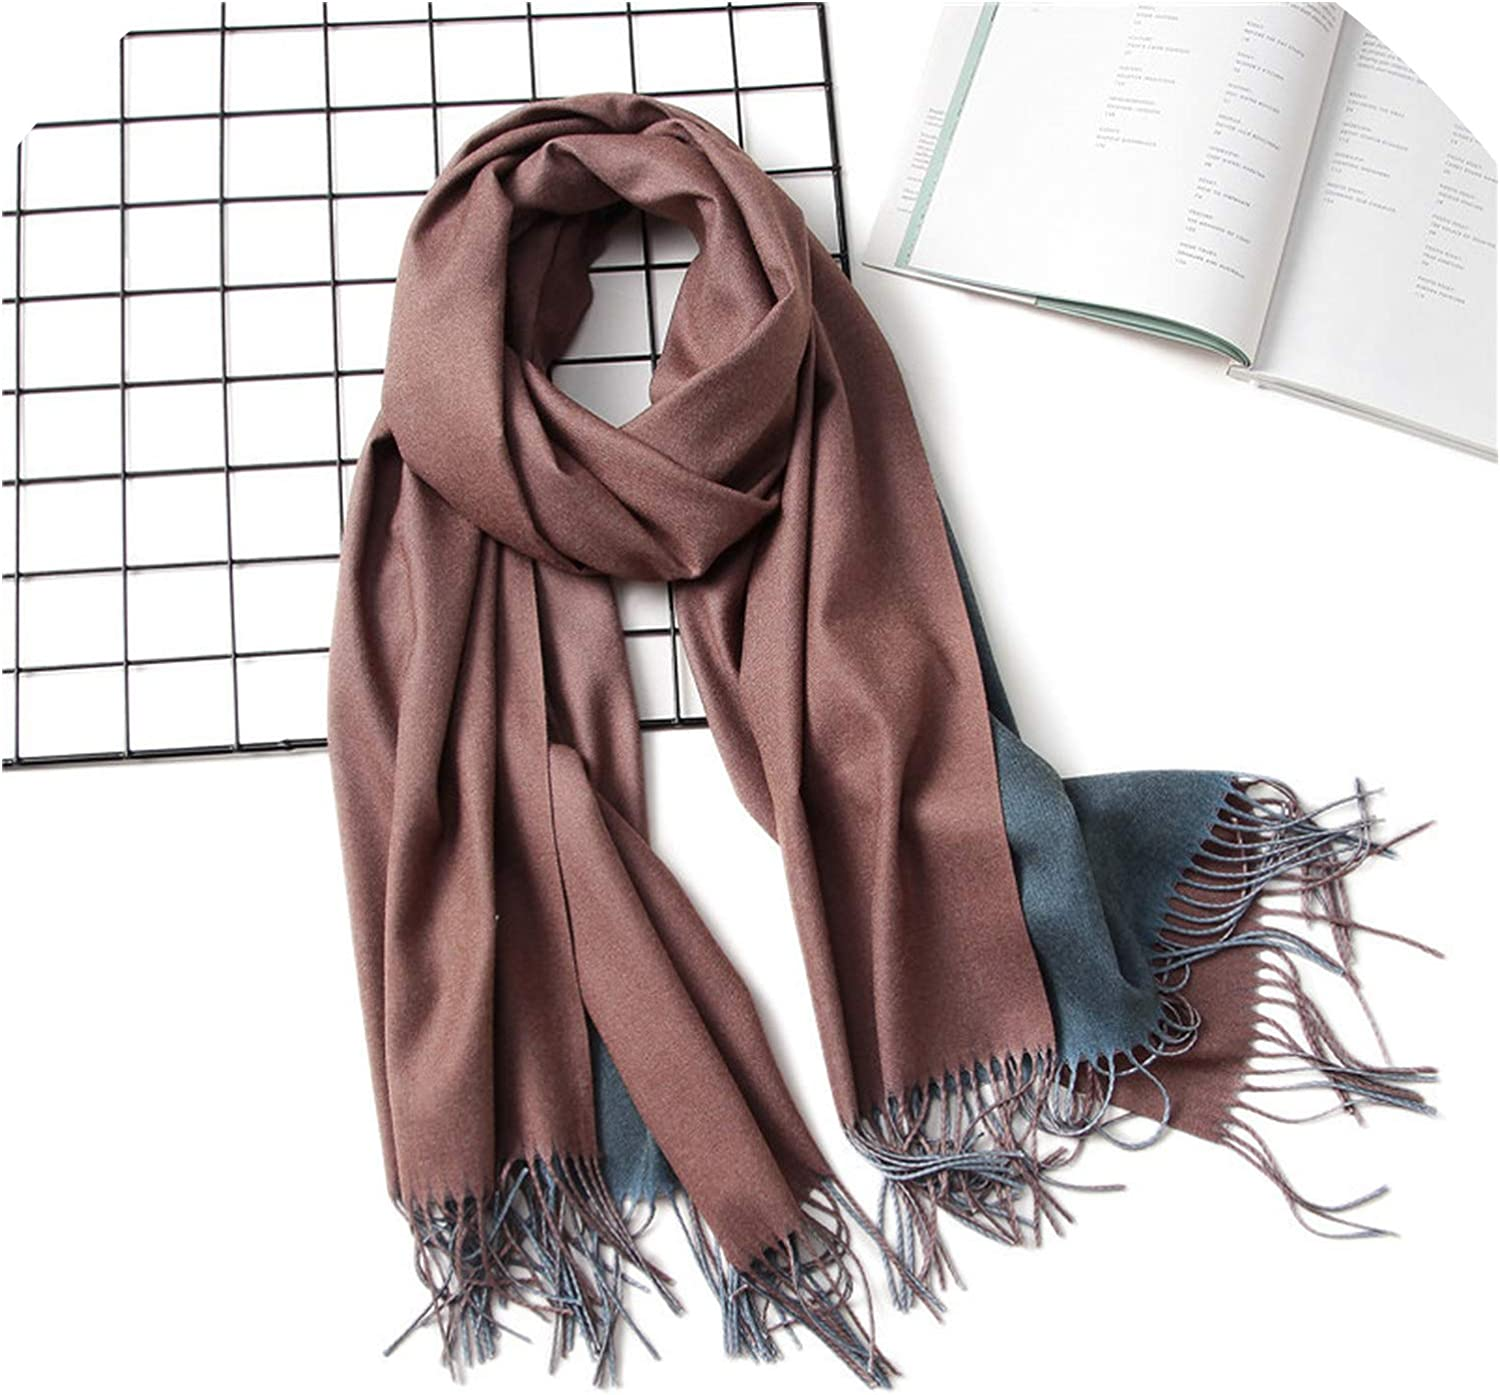 2019 Winter Women Scarf Fashion Solid Soft Cashmere Scarves for Lady Pashmina Shawls Wrap,c16